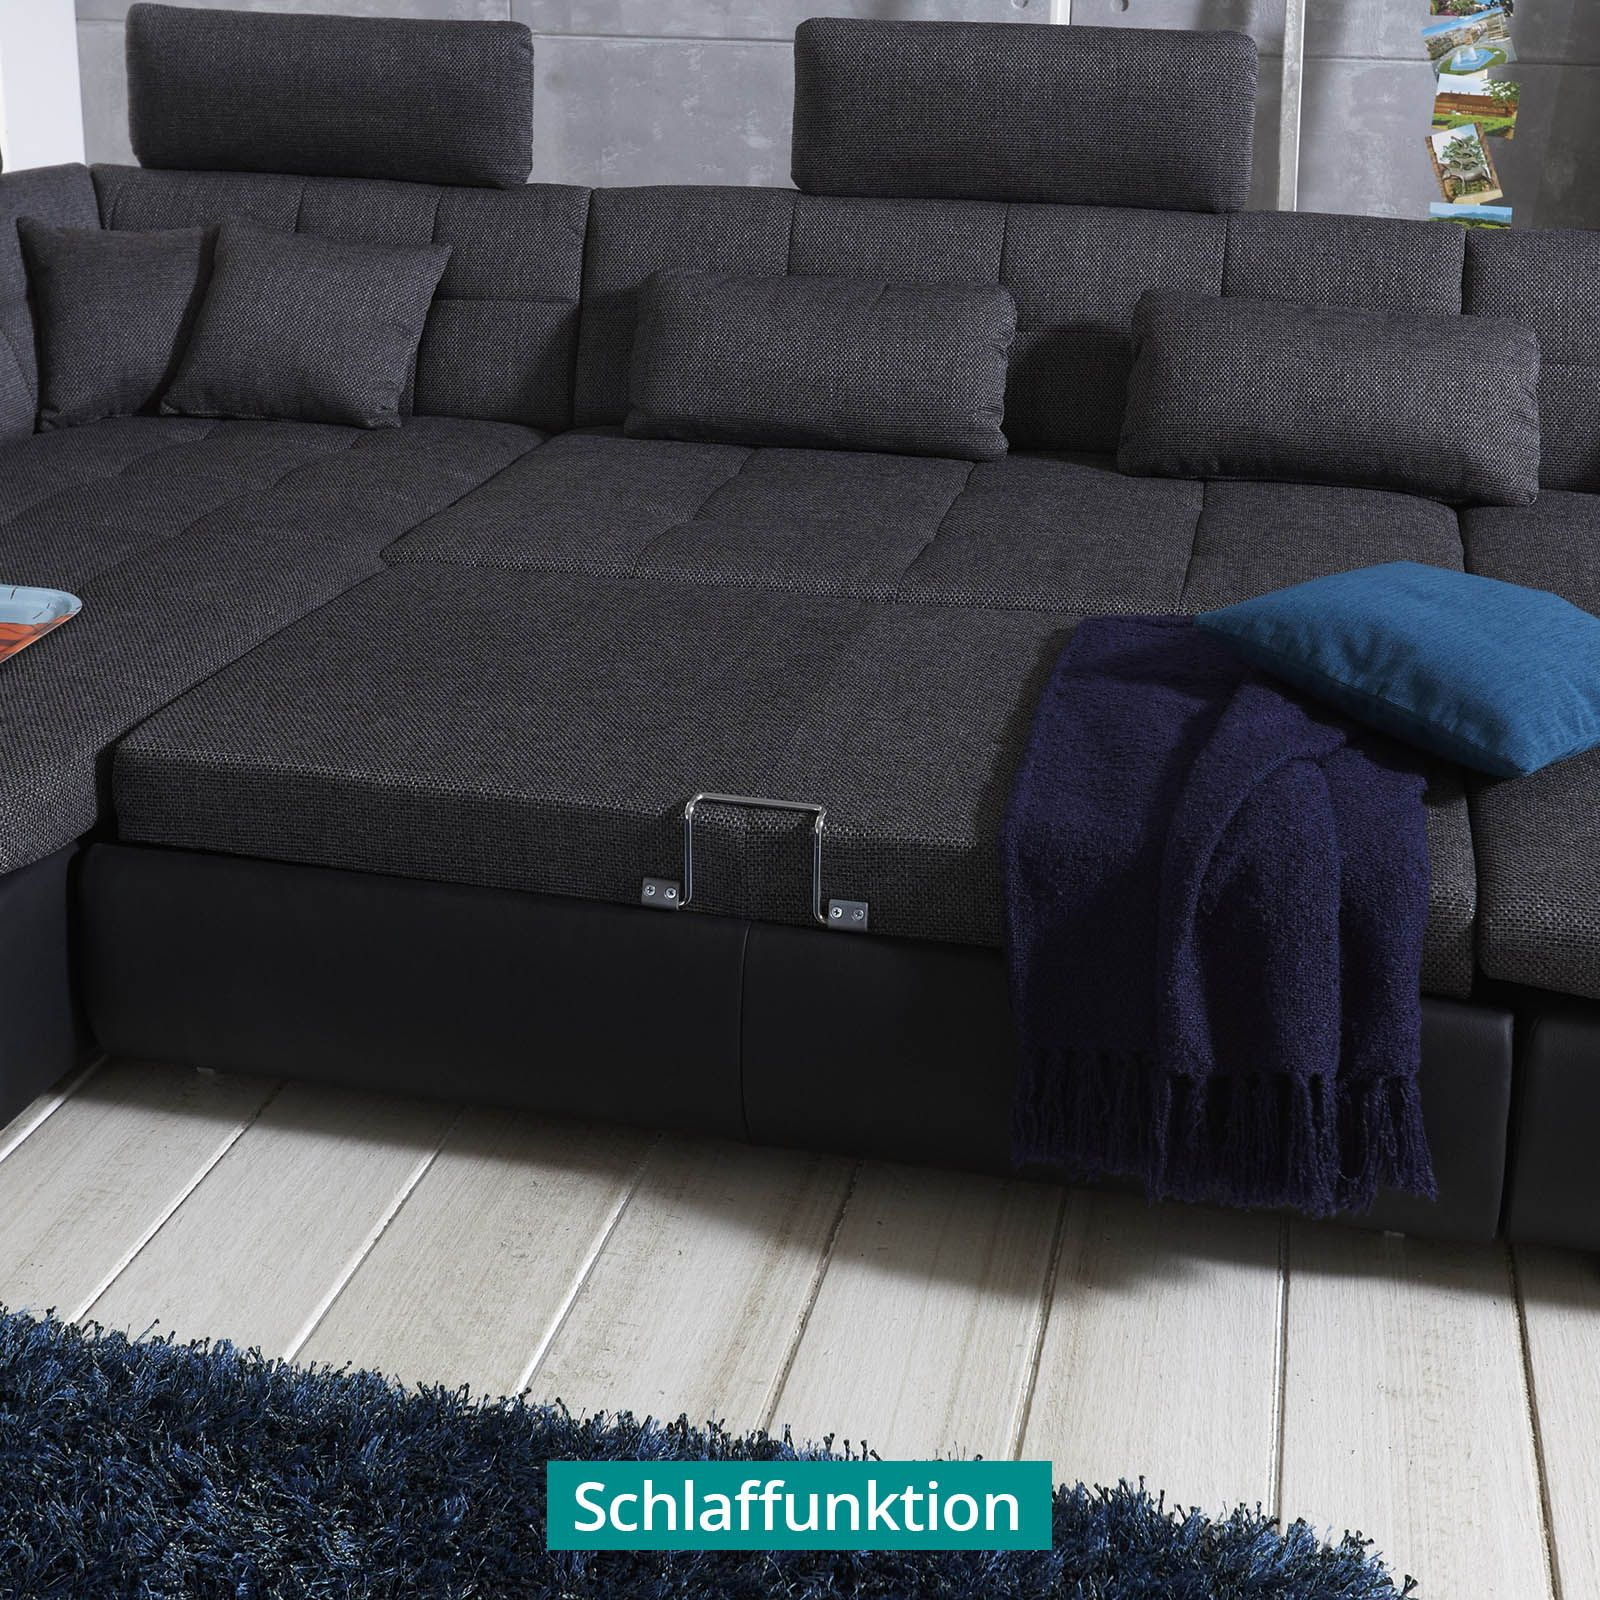 Cool Comfy Couches wohnlandschaft individuell free schwarz | h | cool & comfy couches